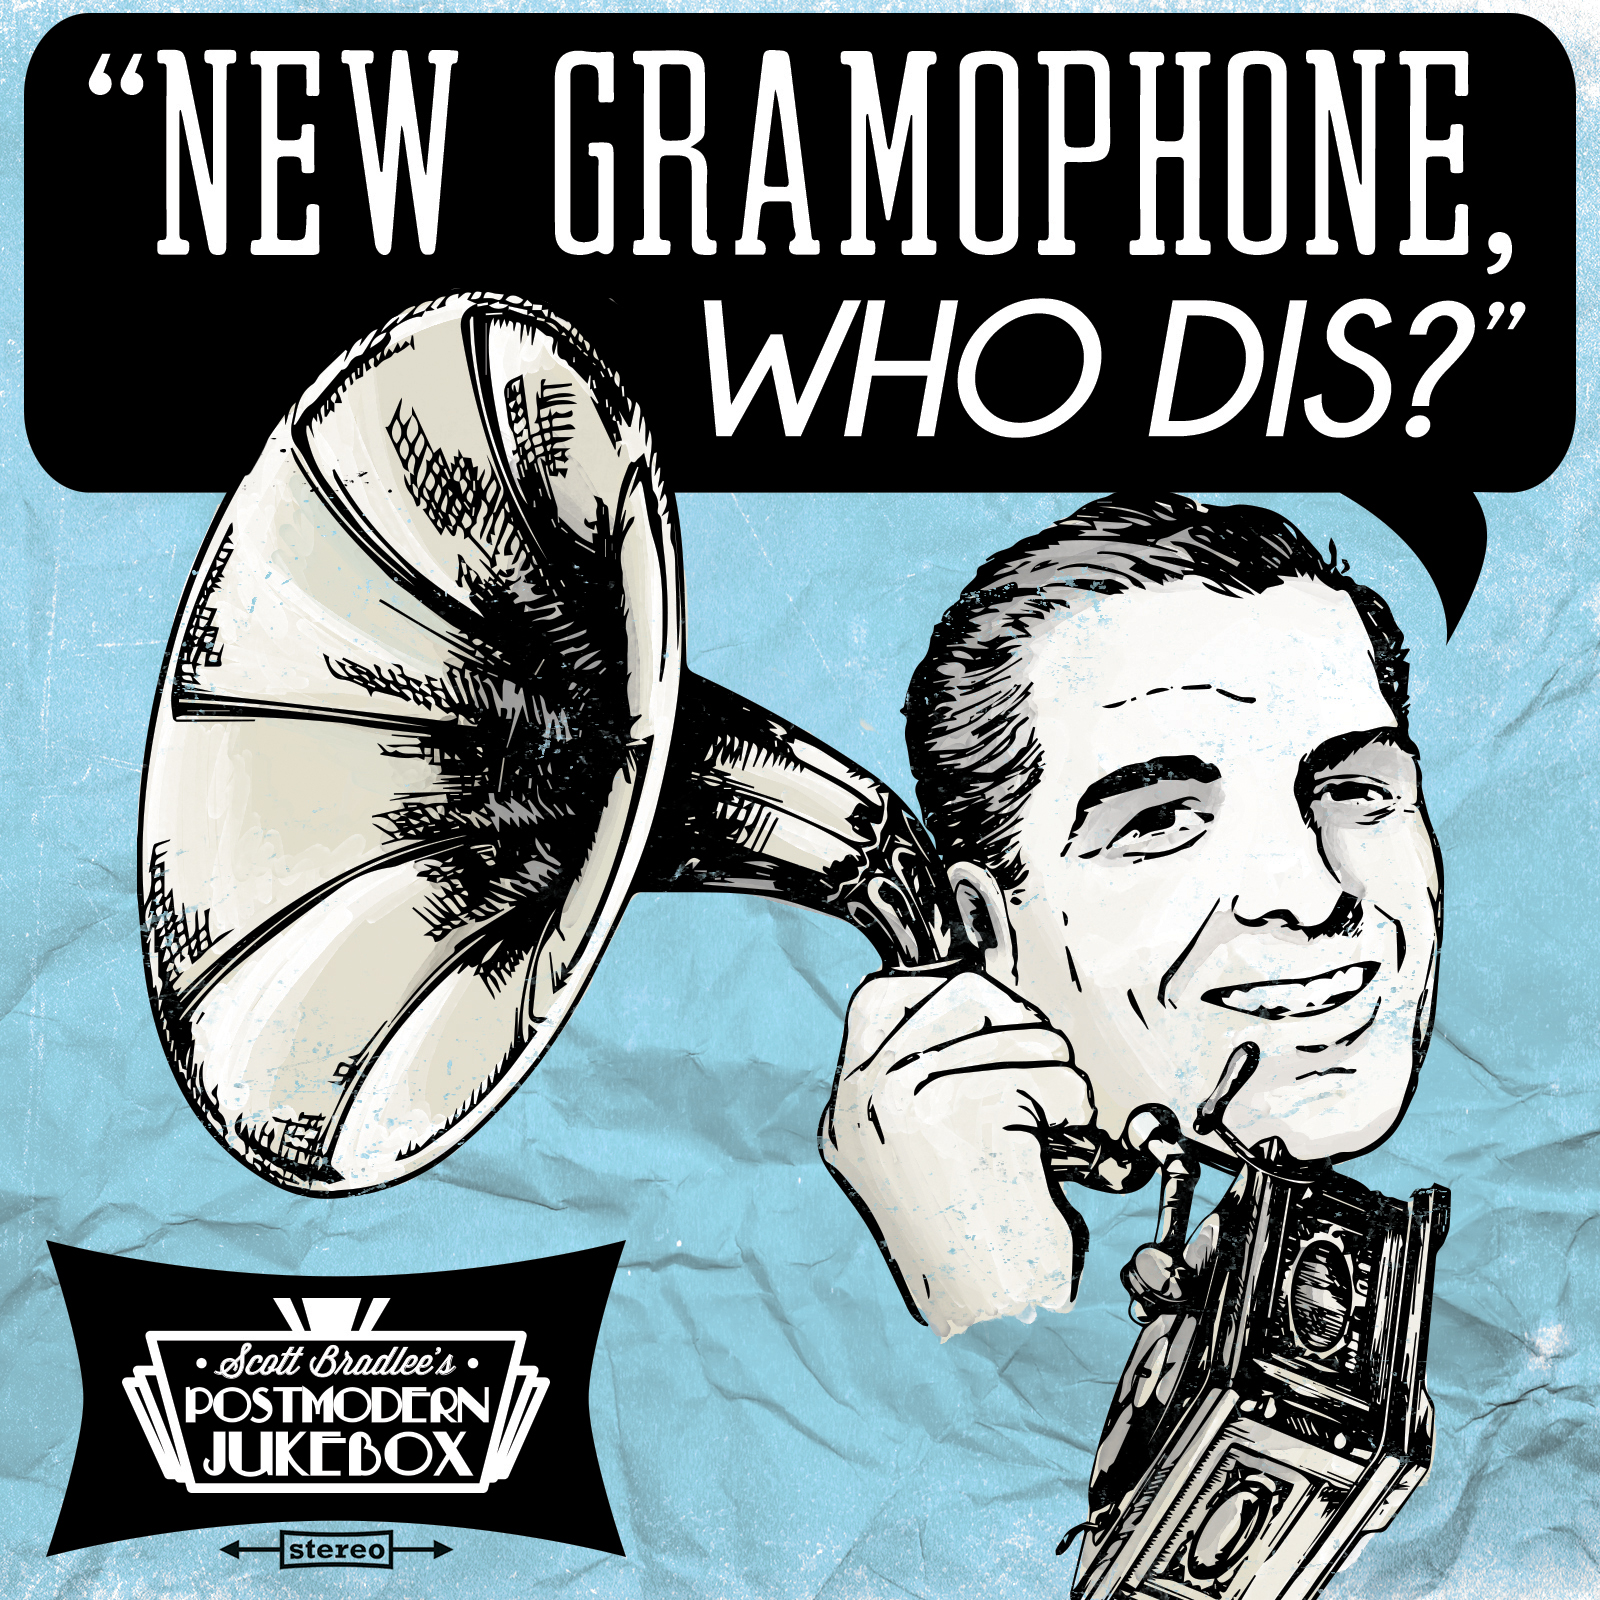 New Gramophone Who Dis?